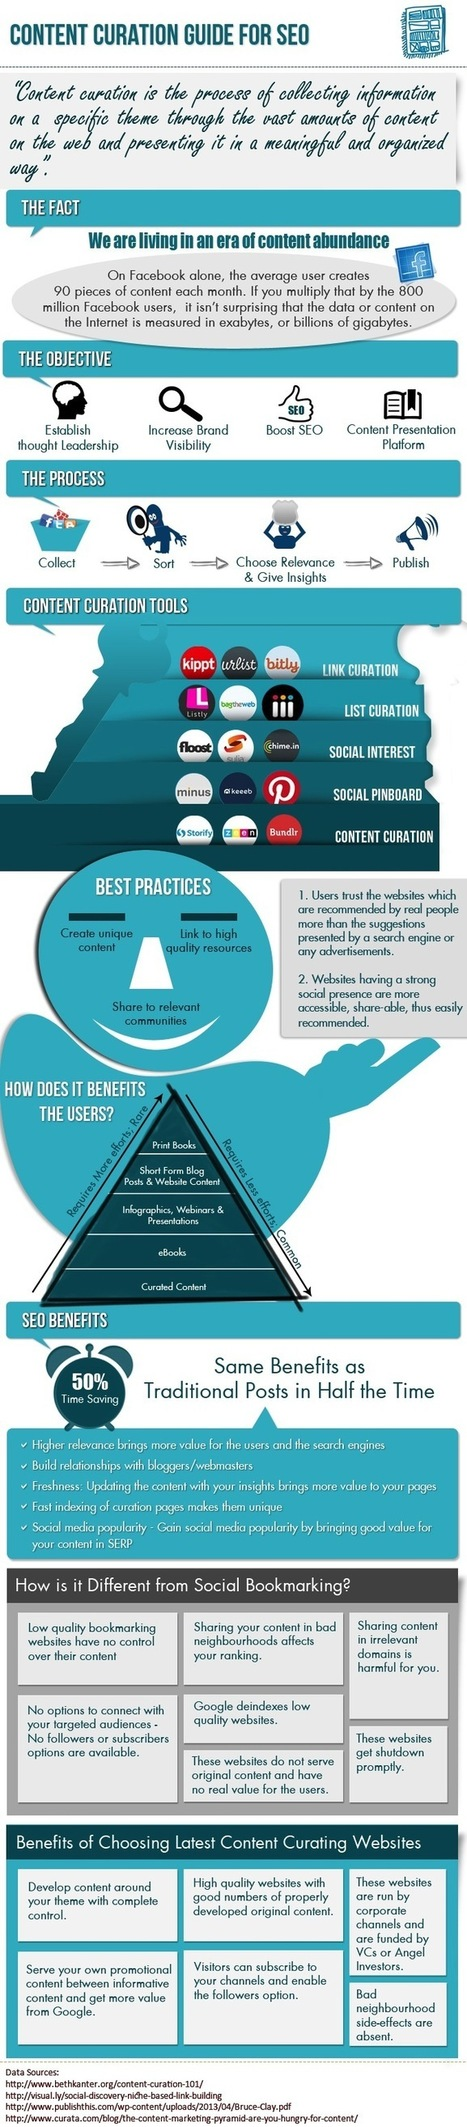 Content Curation Infographic: Process & Best Practices | Sharing Information literacy ideas | Scoop.it